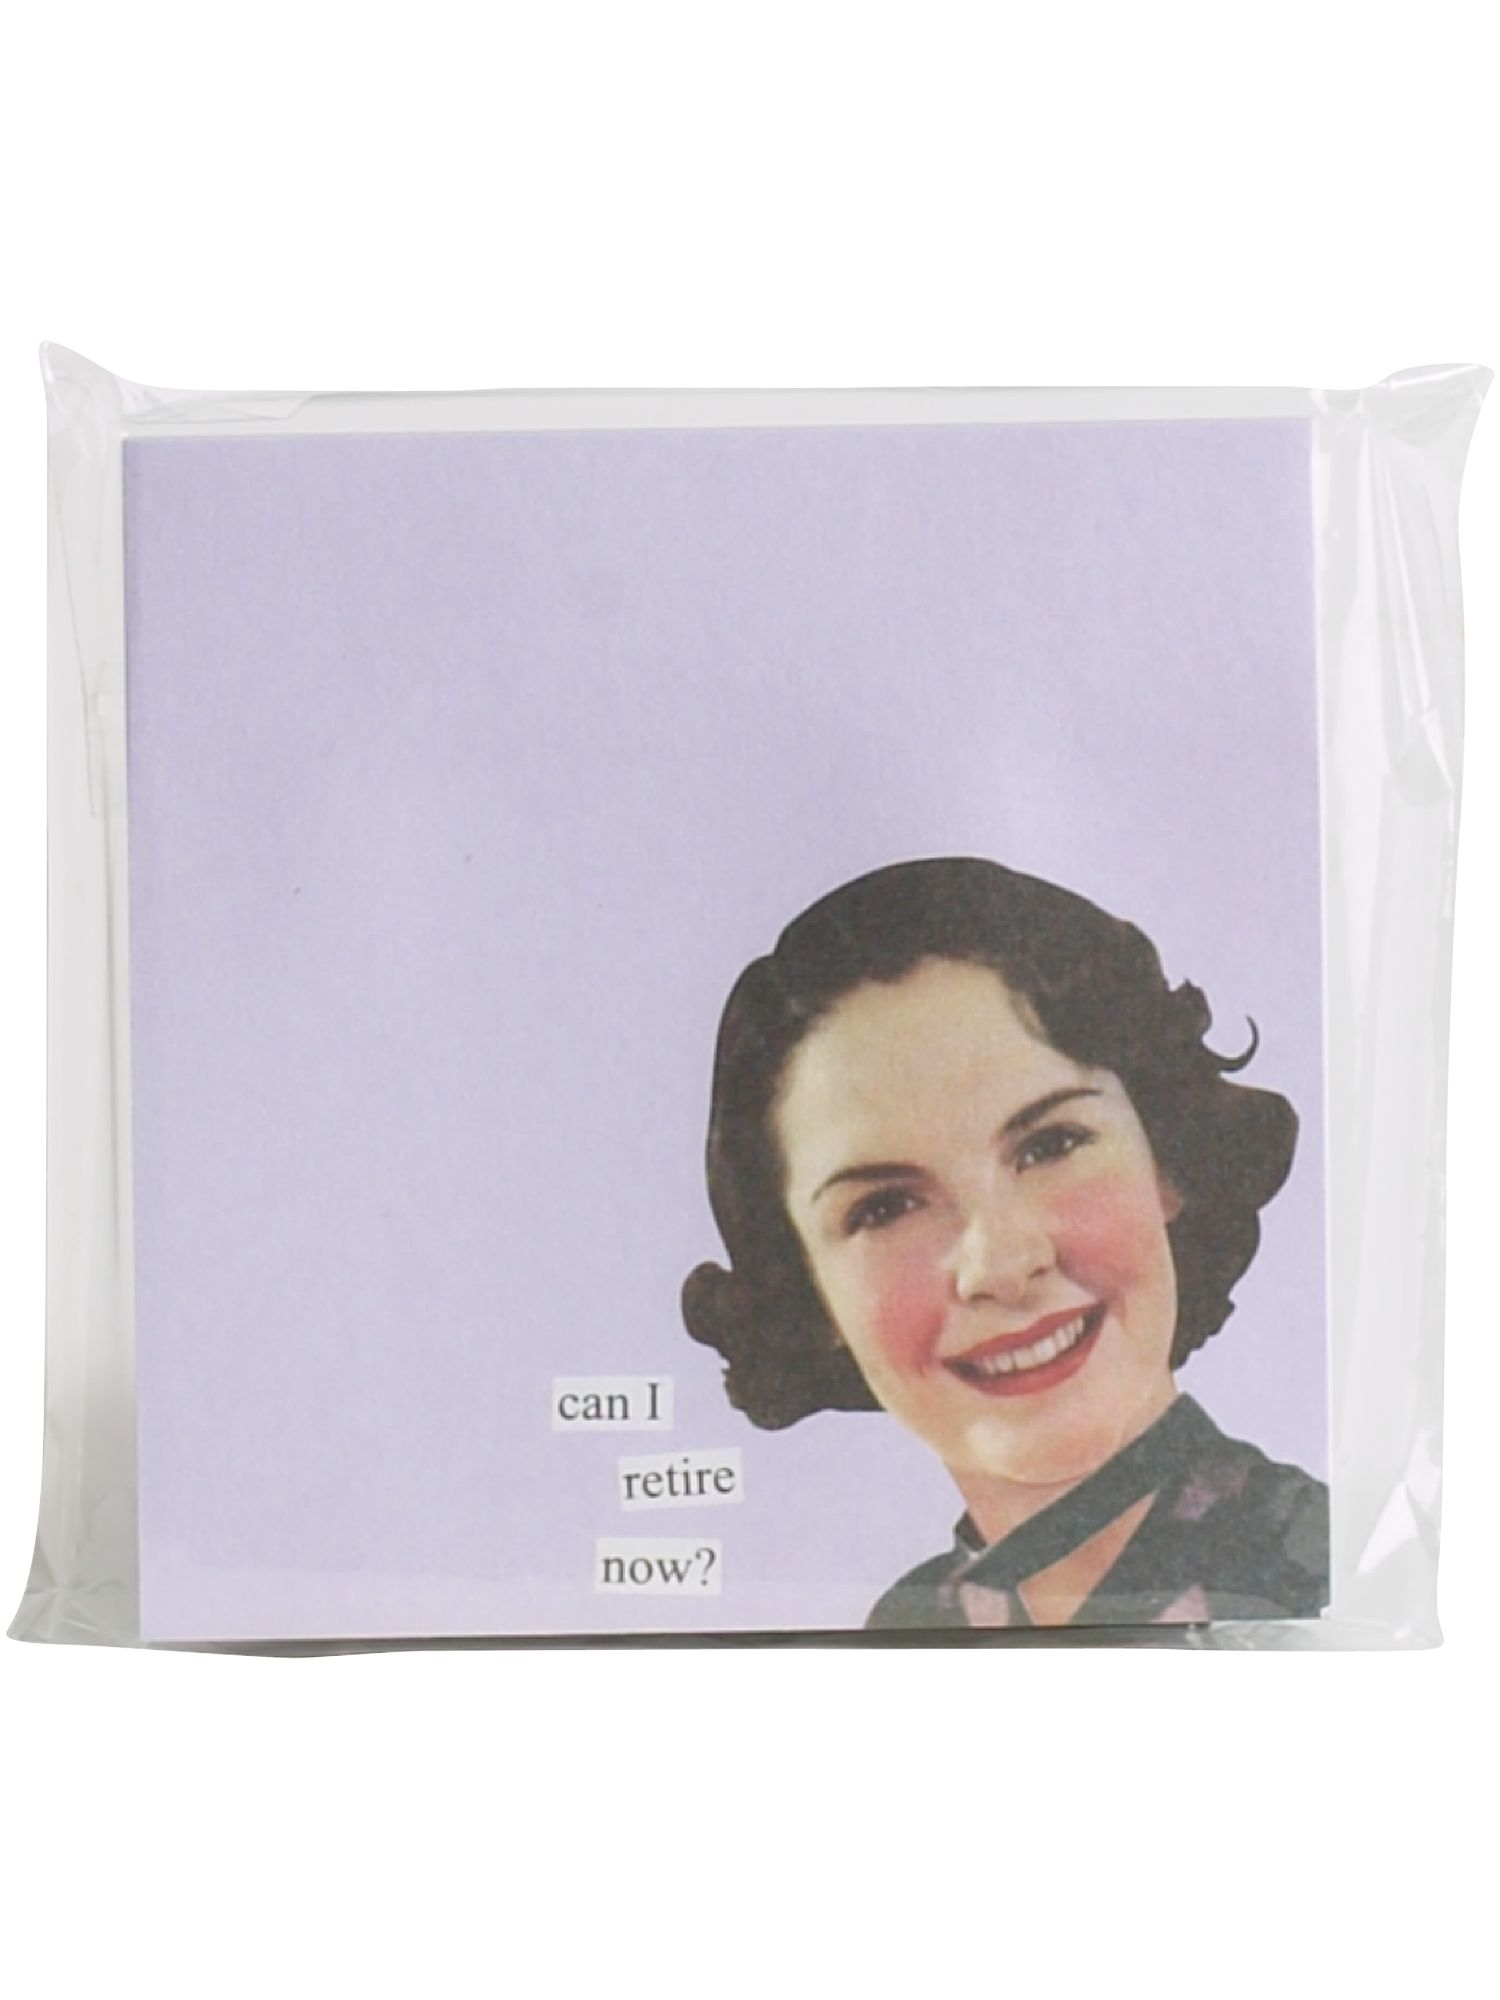 Anne Taintor Can I Retire Now? post it notes product image